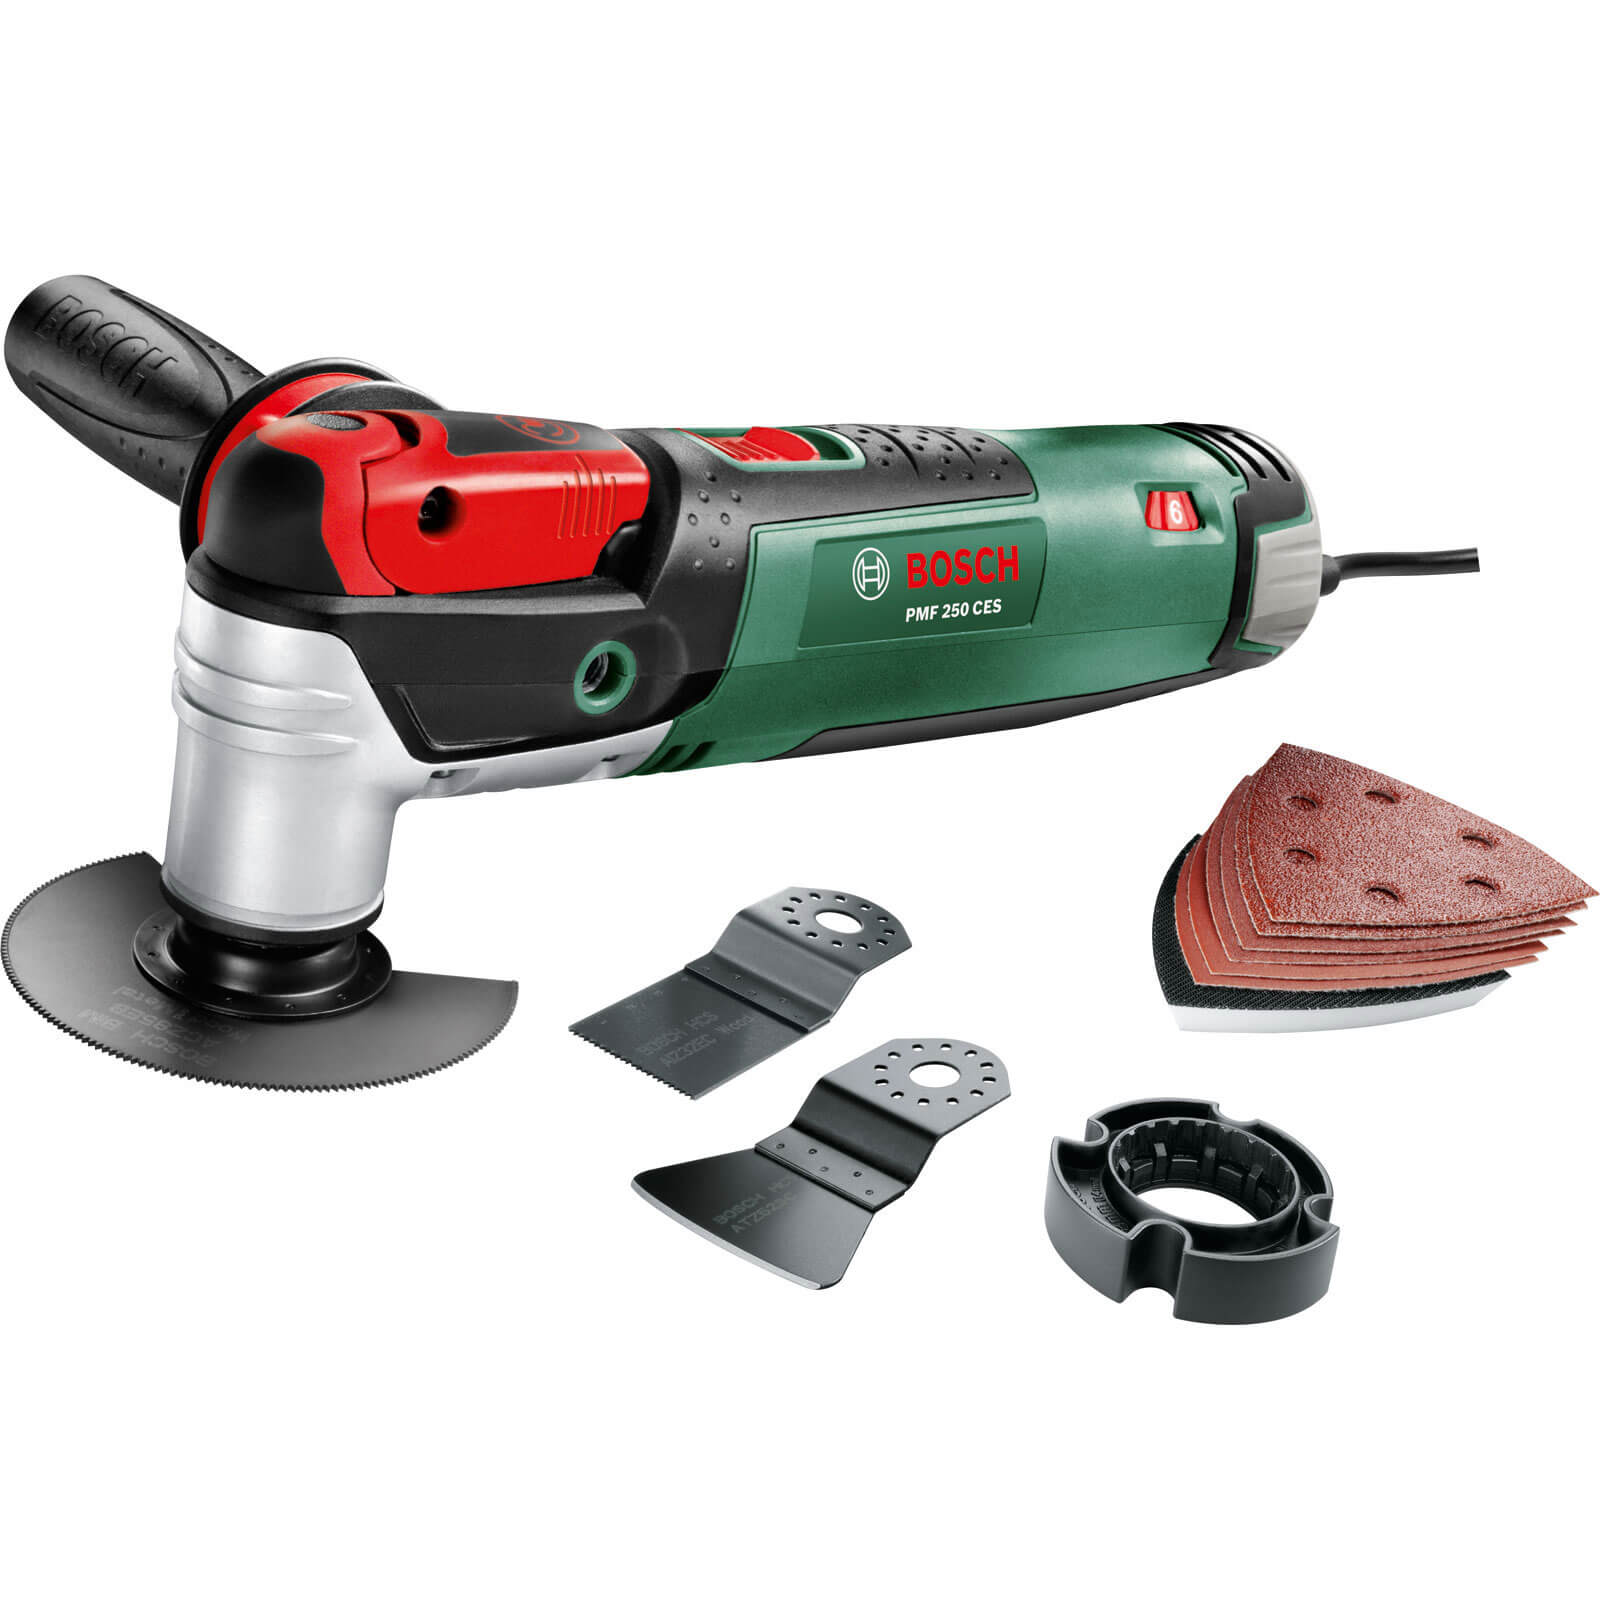 Bosch PMF 250 CES All Rounder 3 In 1 Multi Tool